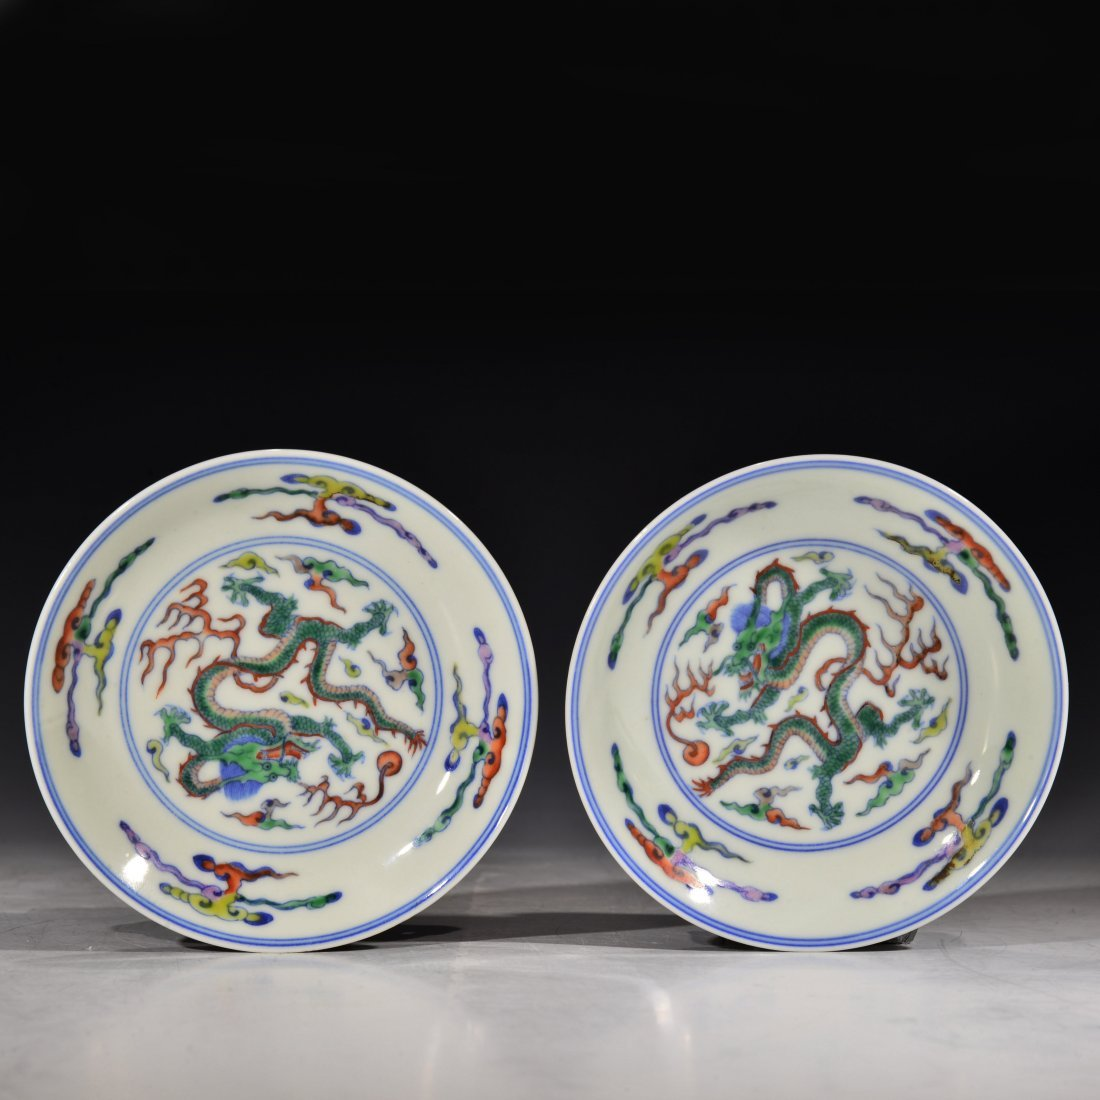 A Pair of Chinese Dou Cai Plate